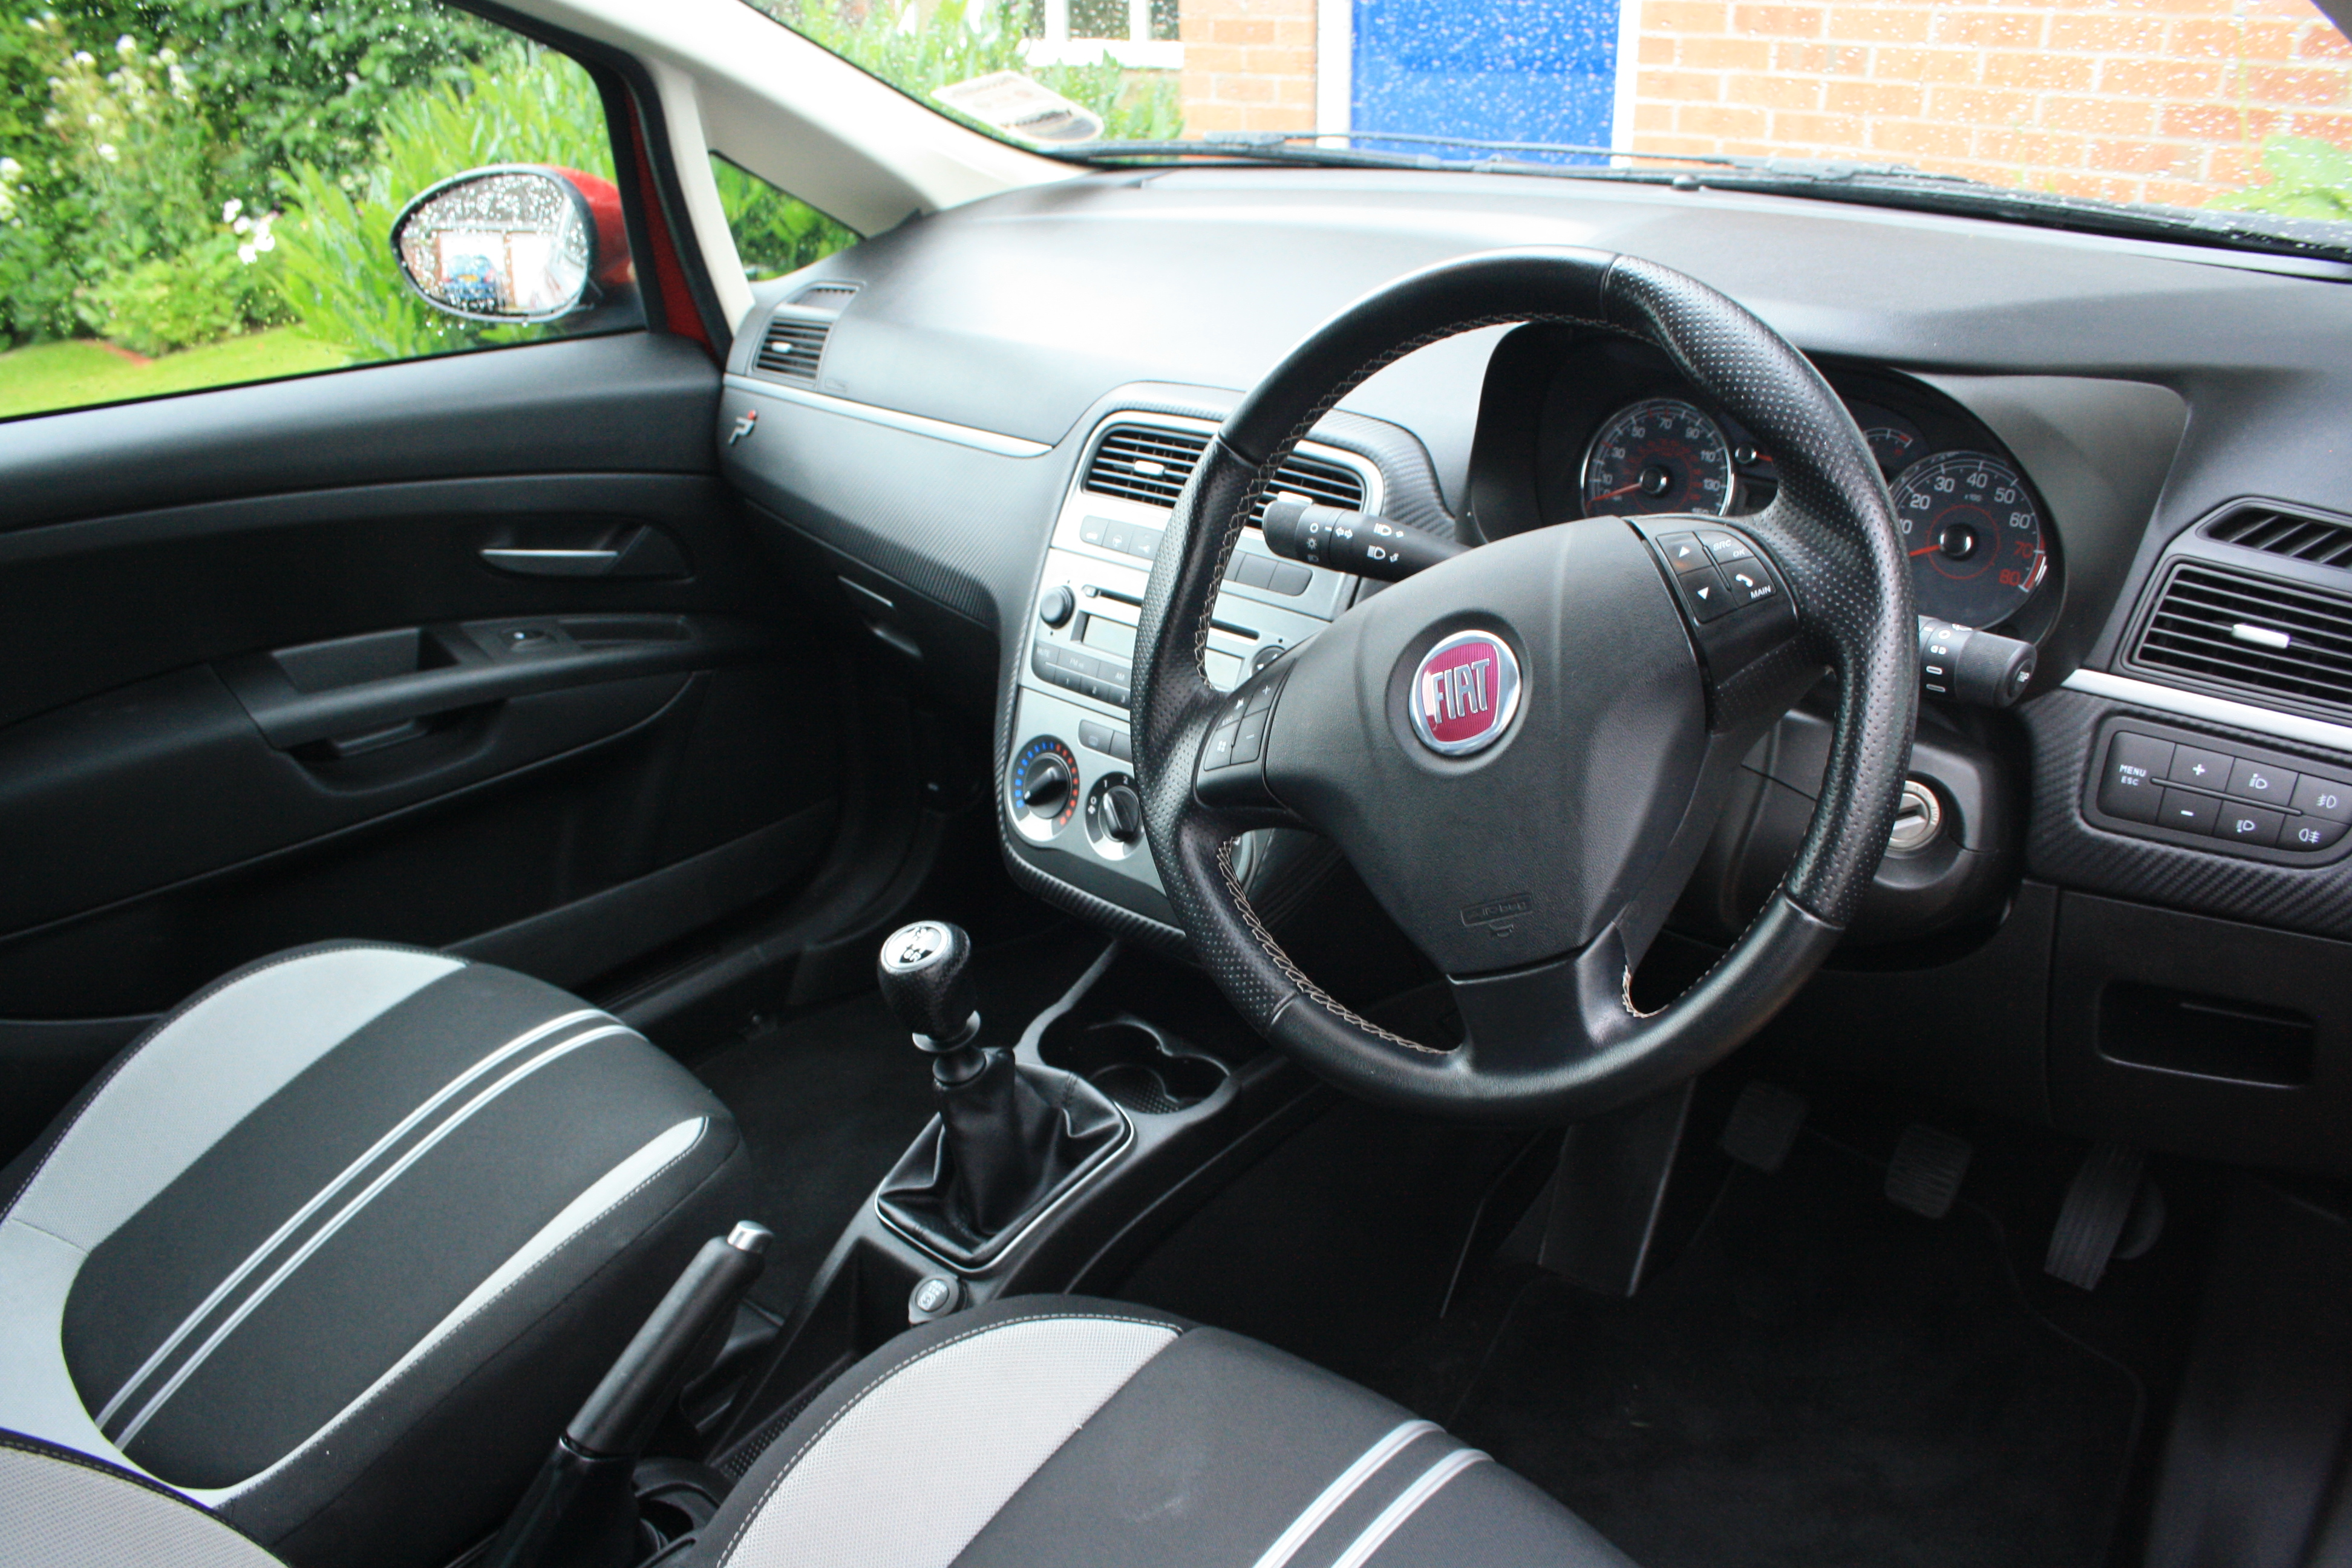 Styling: Steering Wheel Control Removal?